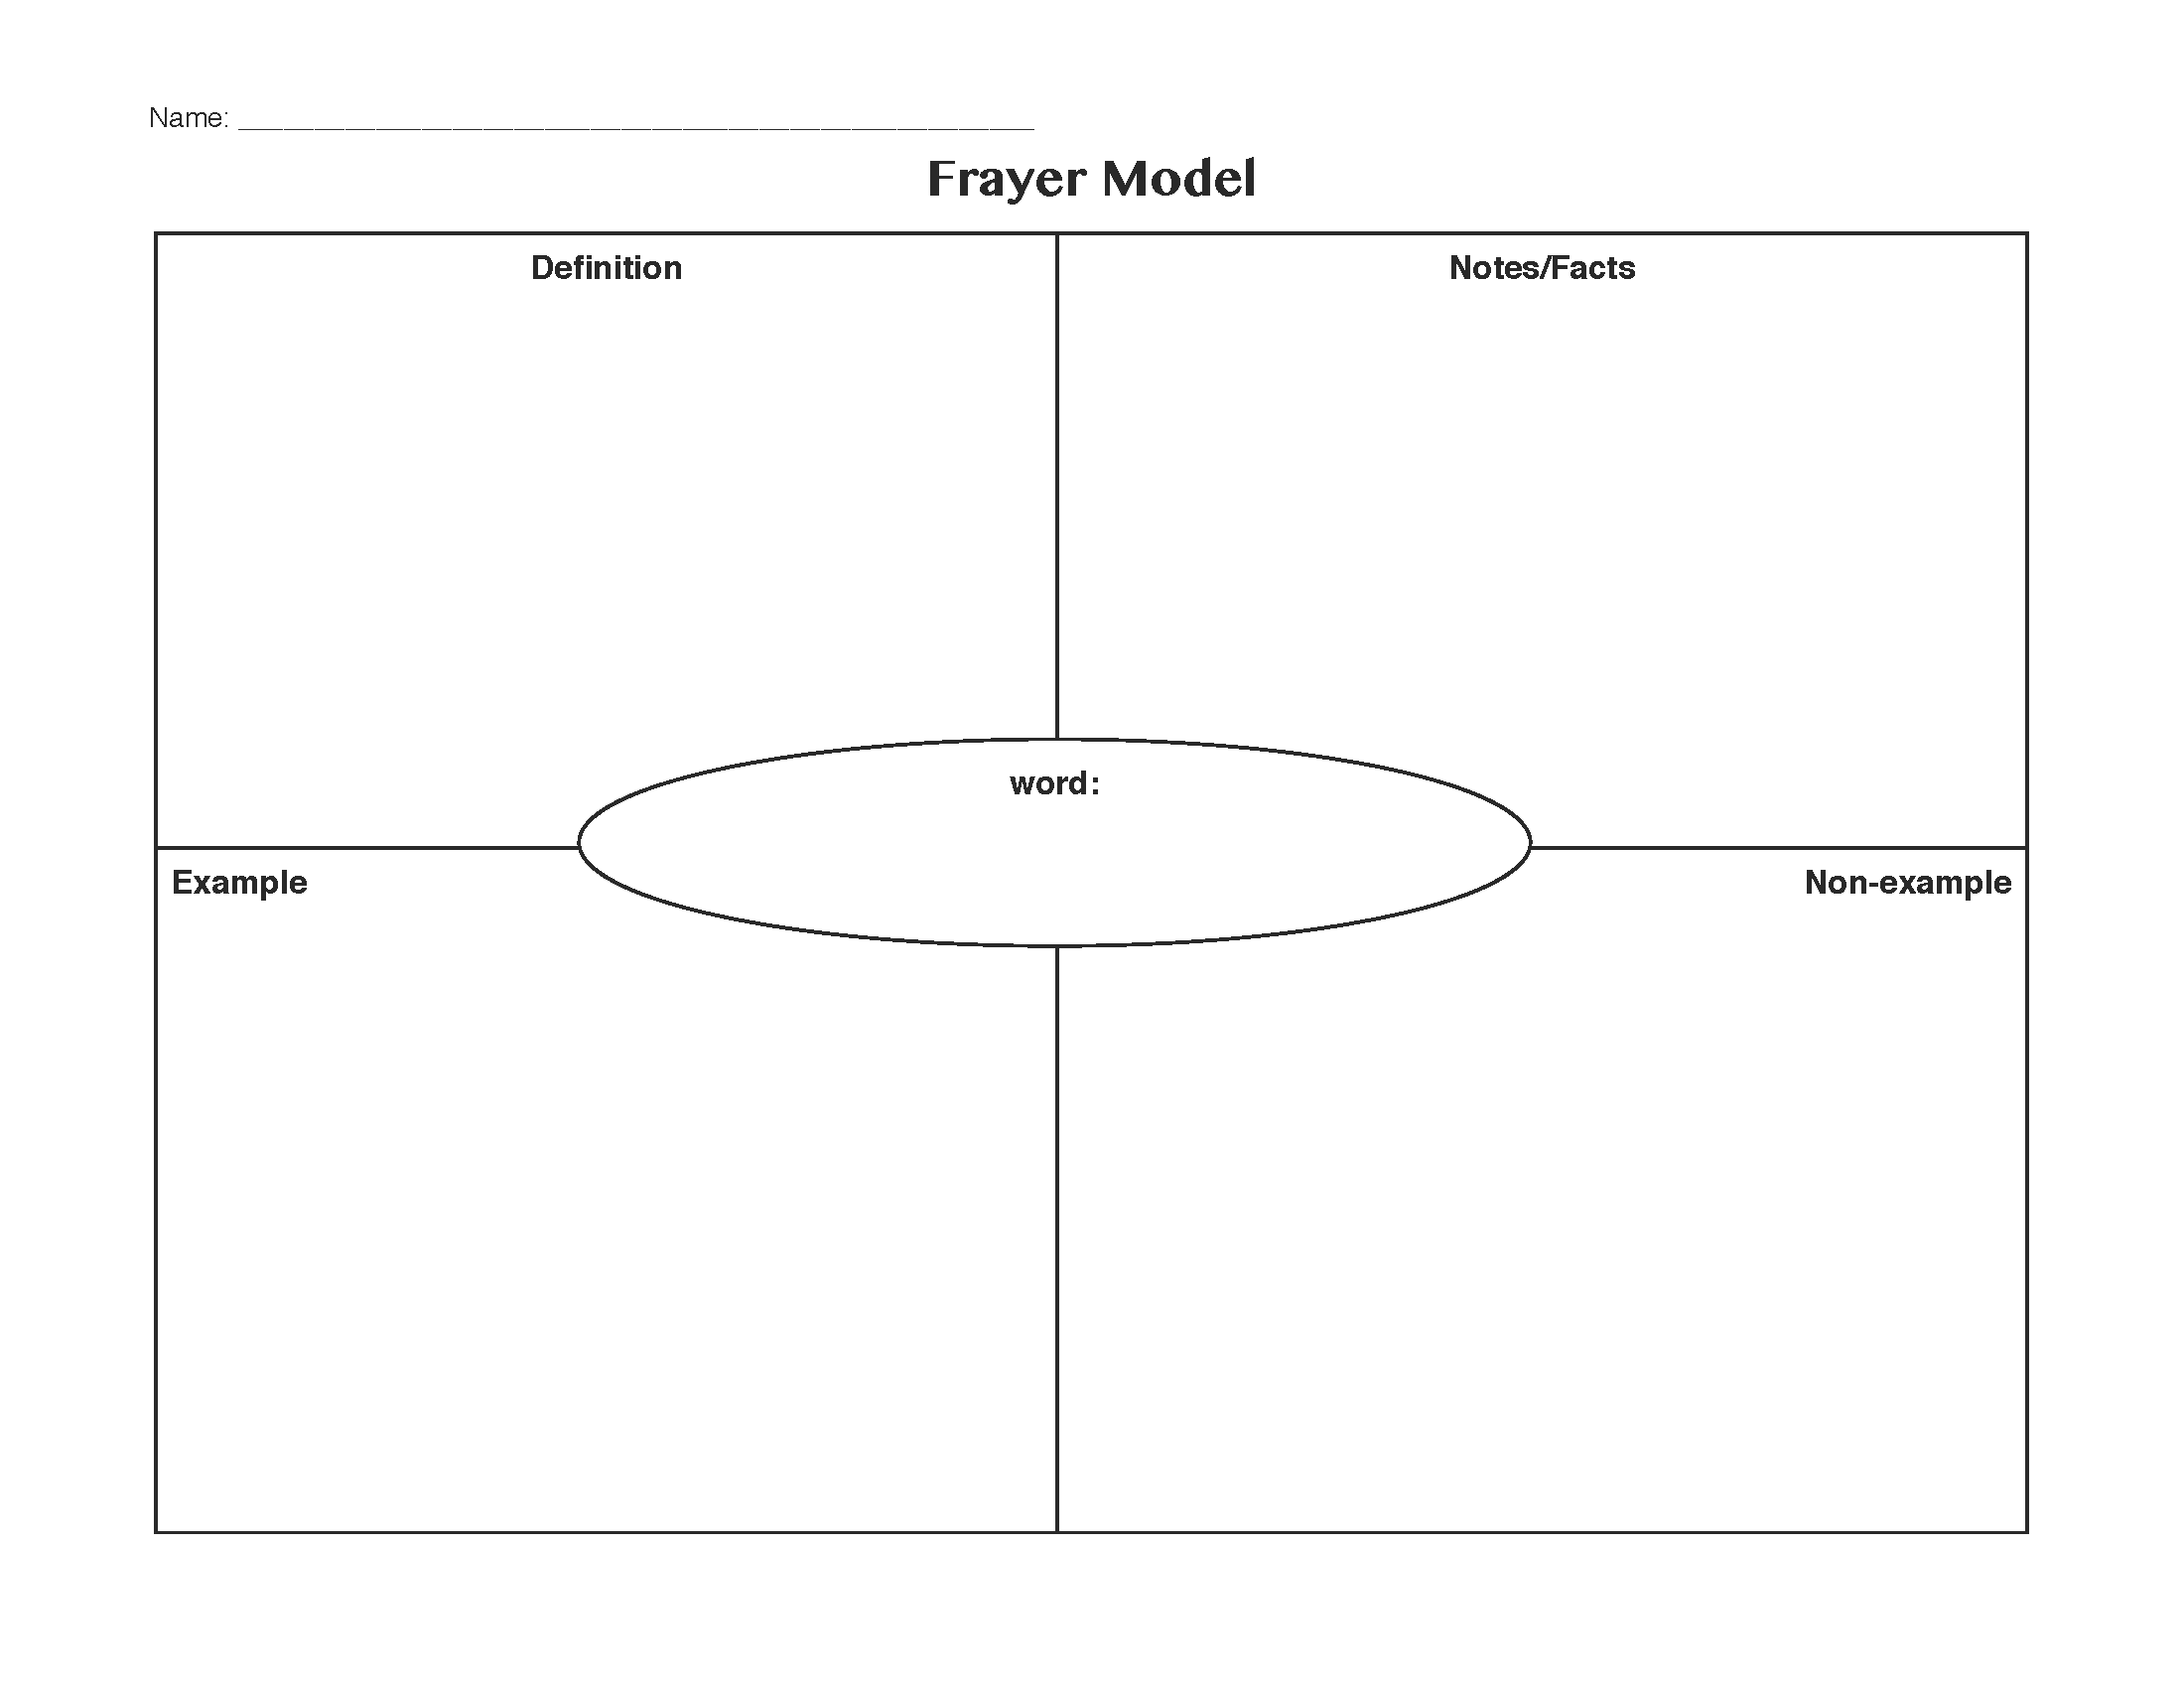 frayer model for vocabulary  1  page 1